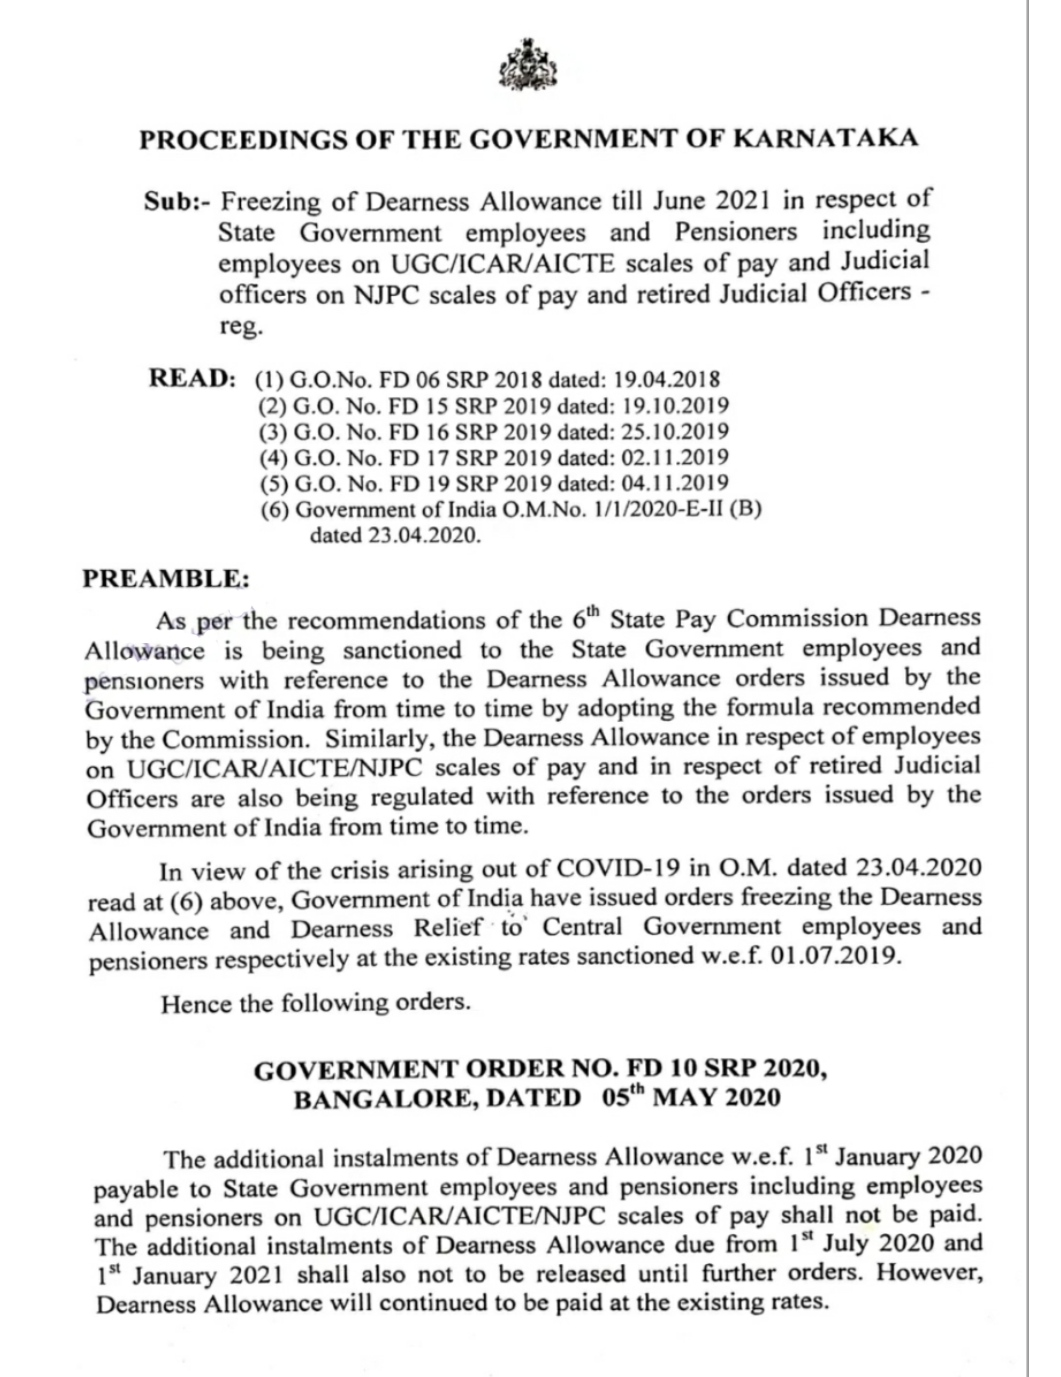 Regulation of non-payment of dues allowance (DA) to State Government employees till June -21